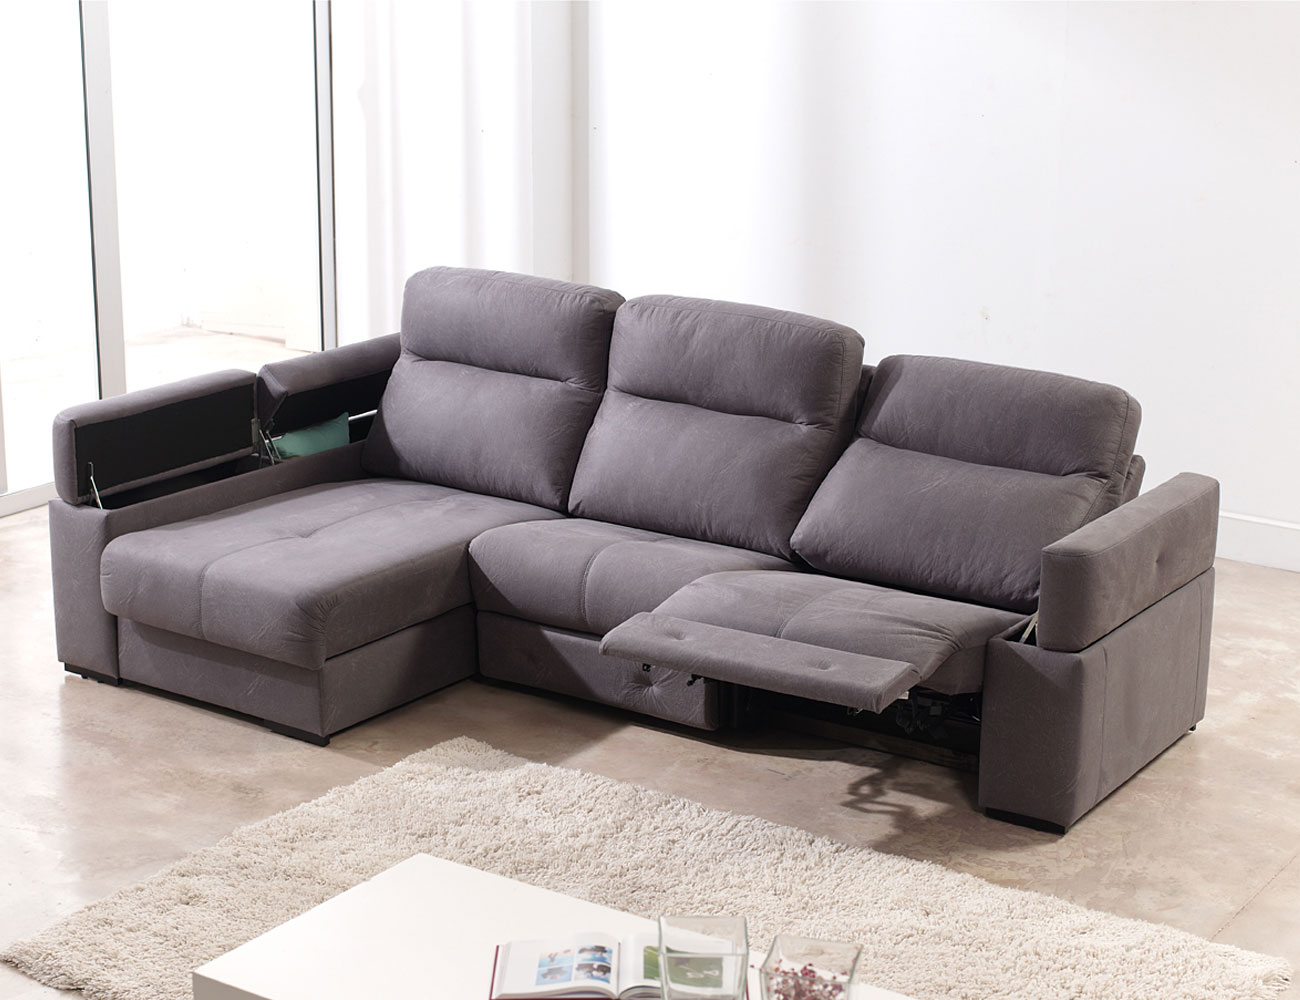 Sofa chaiselongue relax motor electrico 3 arcon 111